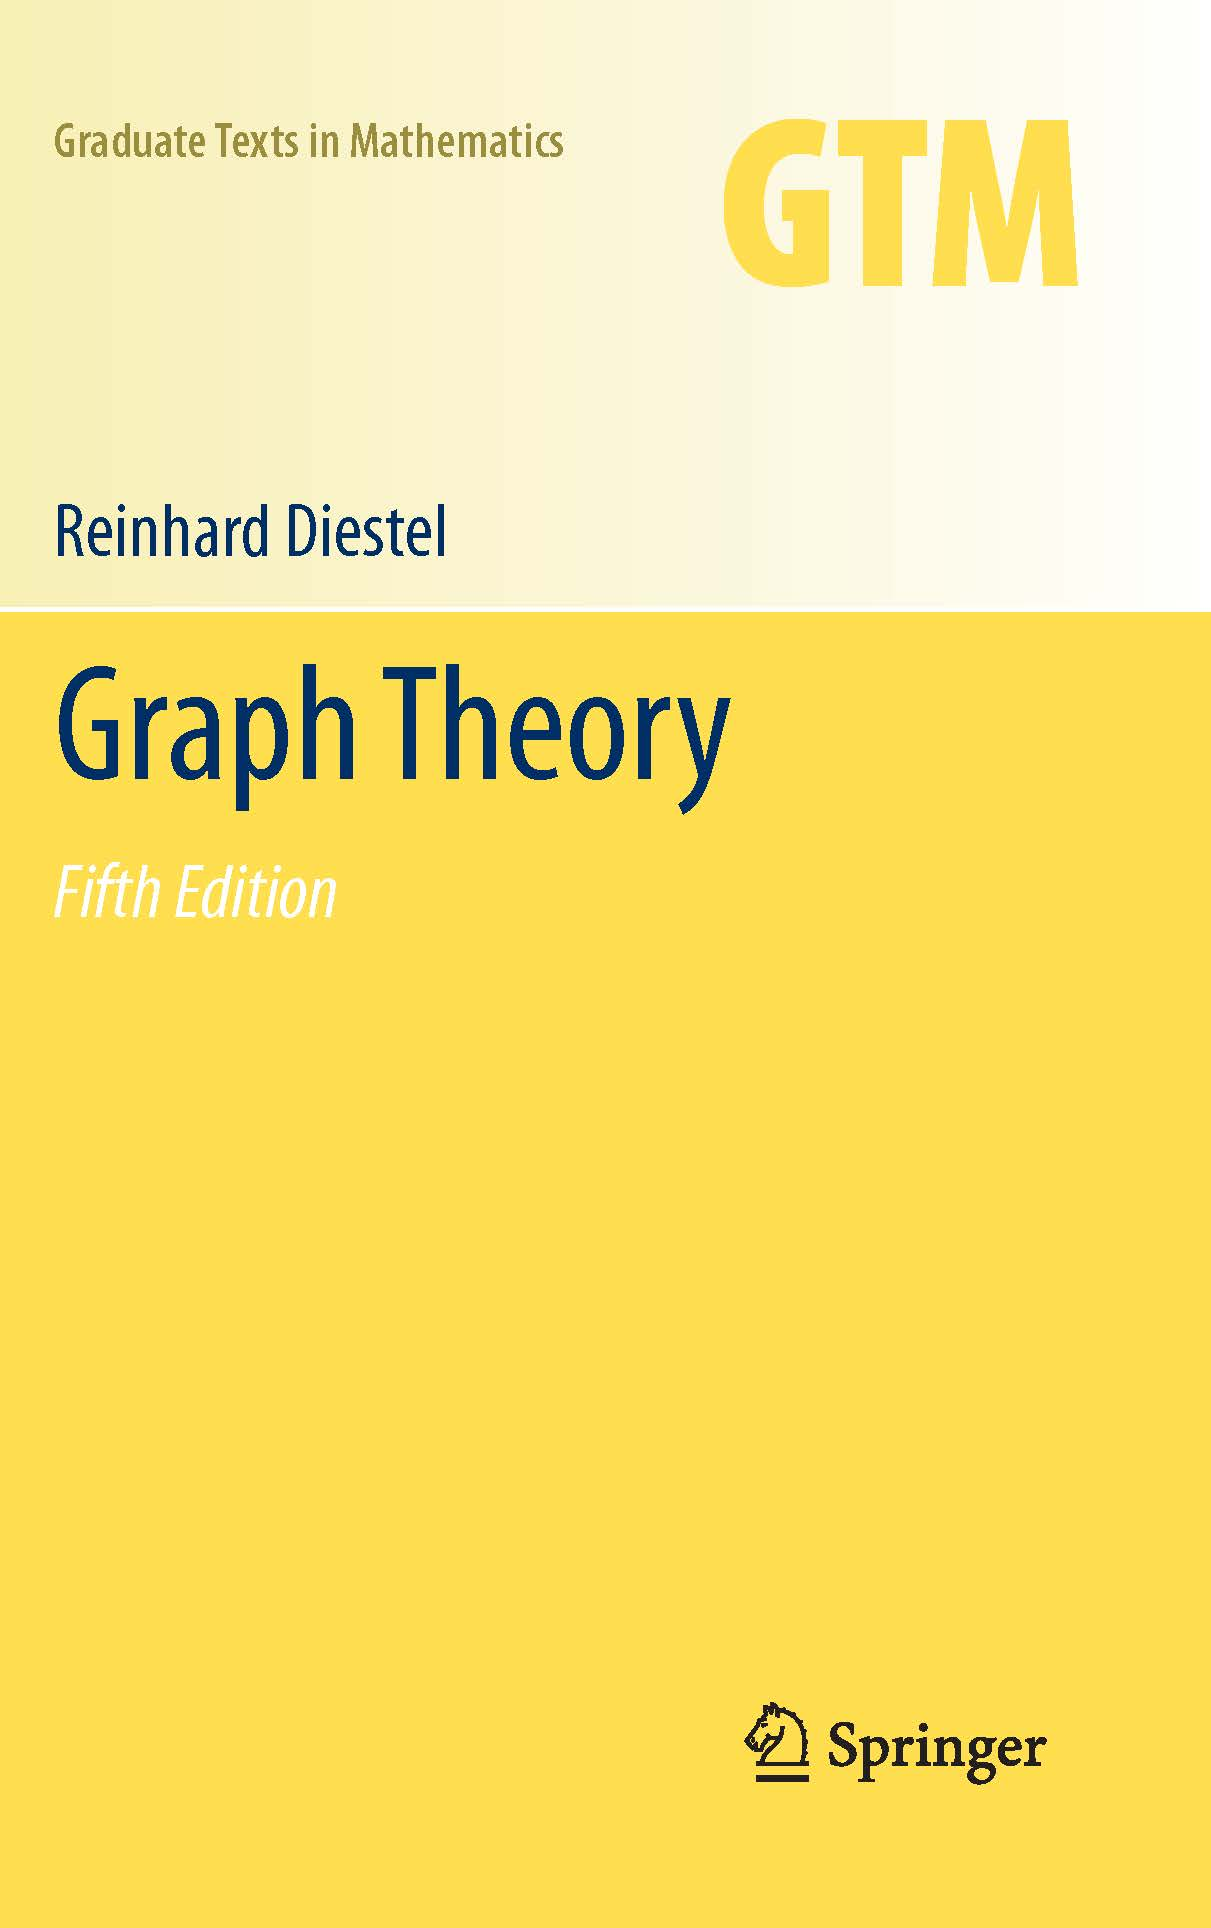 Graph Theory, 5th Edition [Free Preview]